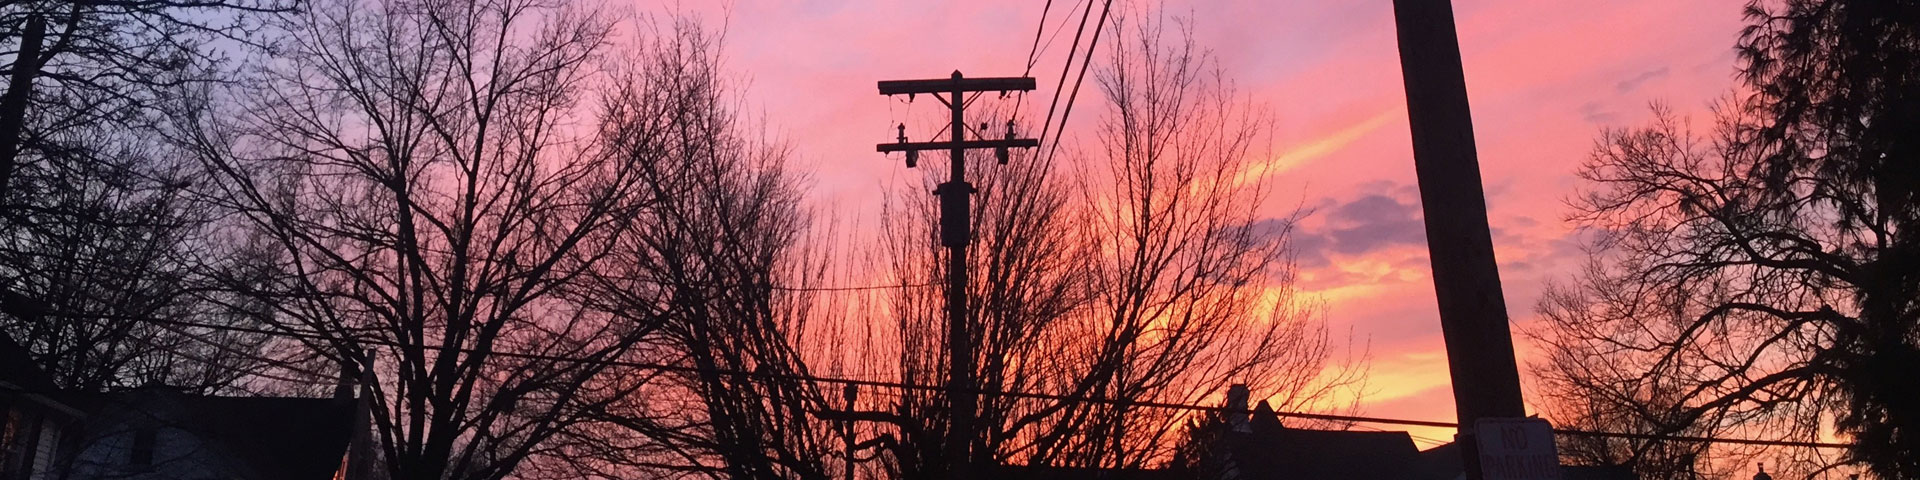 A brilliant pink, orange, and yellow sunset fades to blue. Power lines and trees are backlit by the sunset.